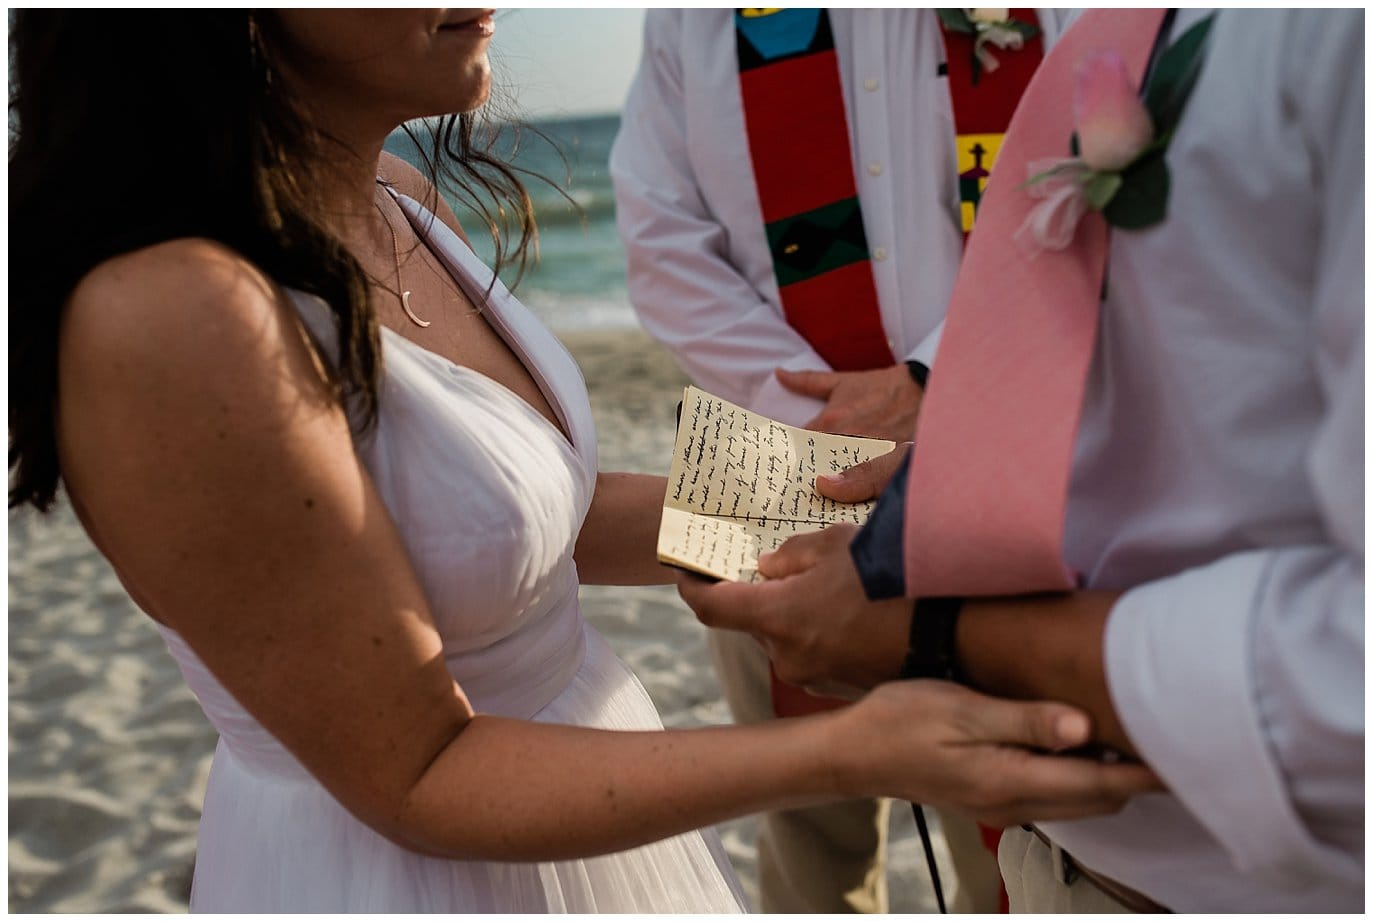 Florida beach wedding vows photo